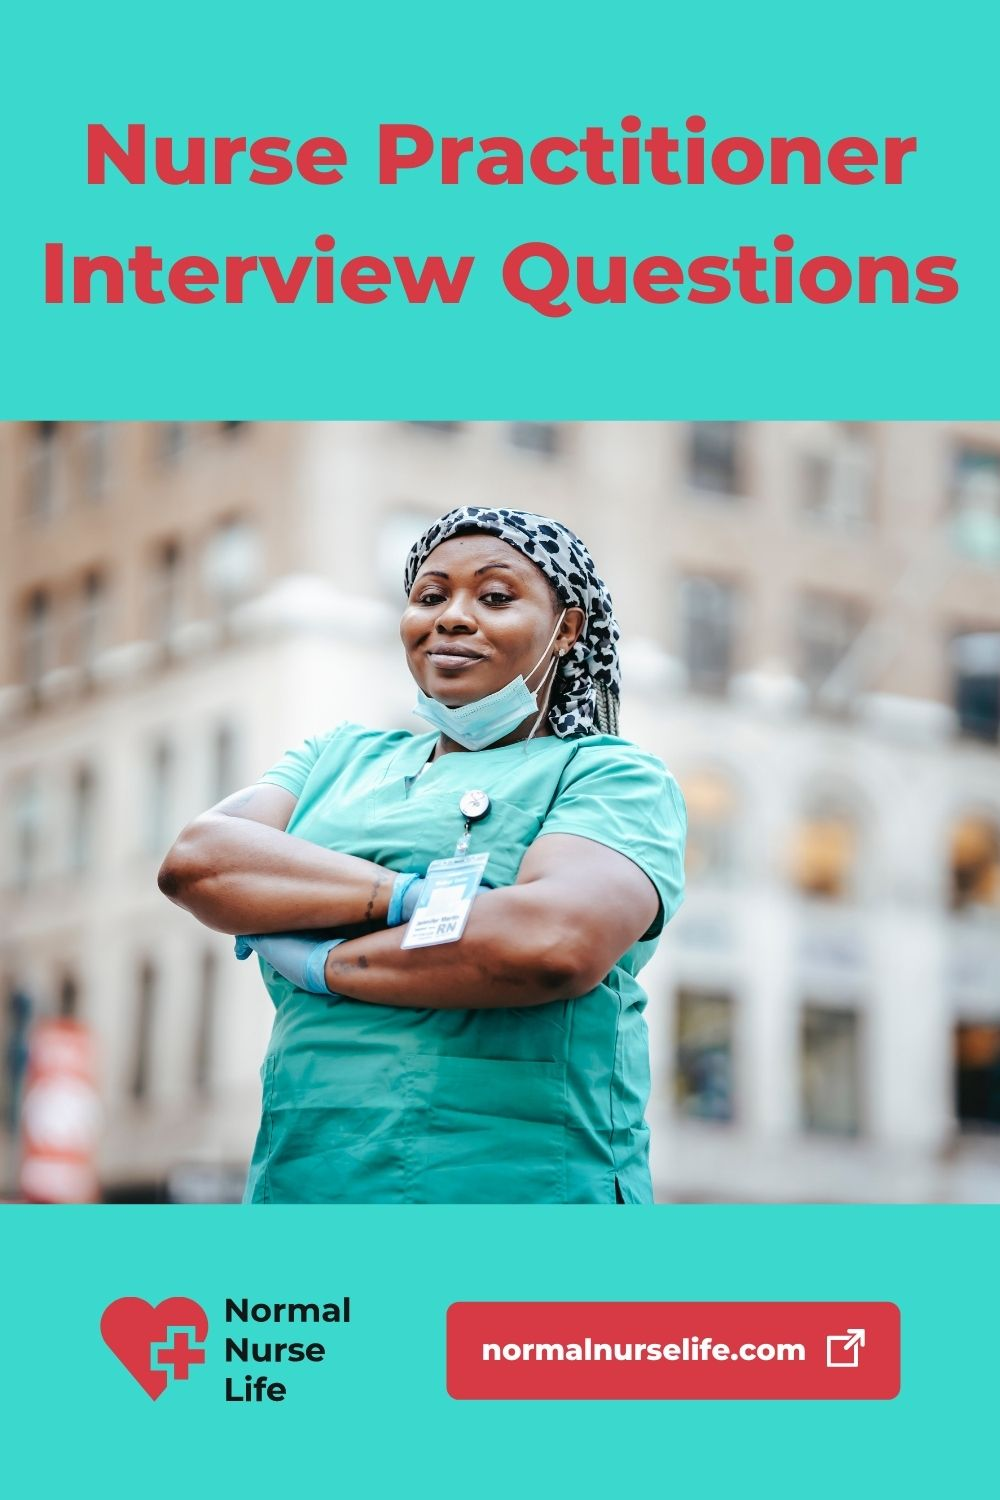 Interview questions for a nurse practitioner